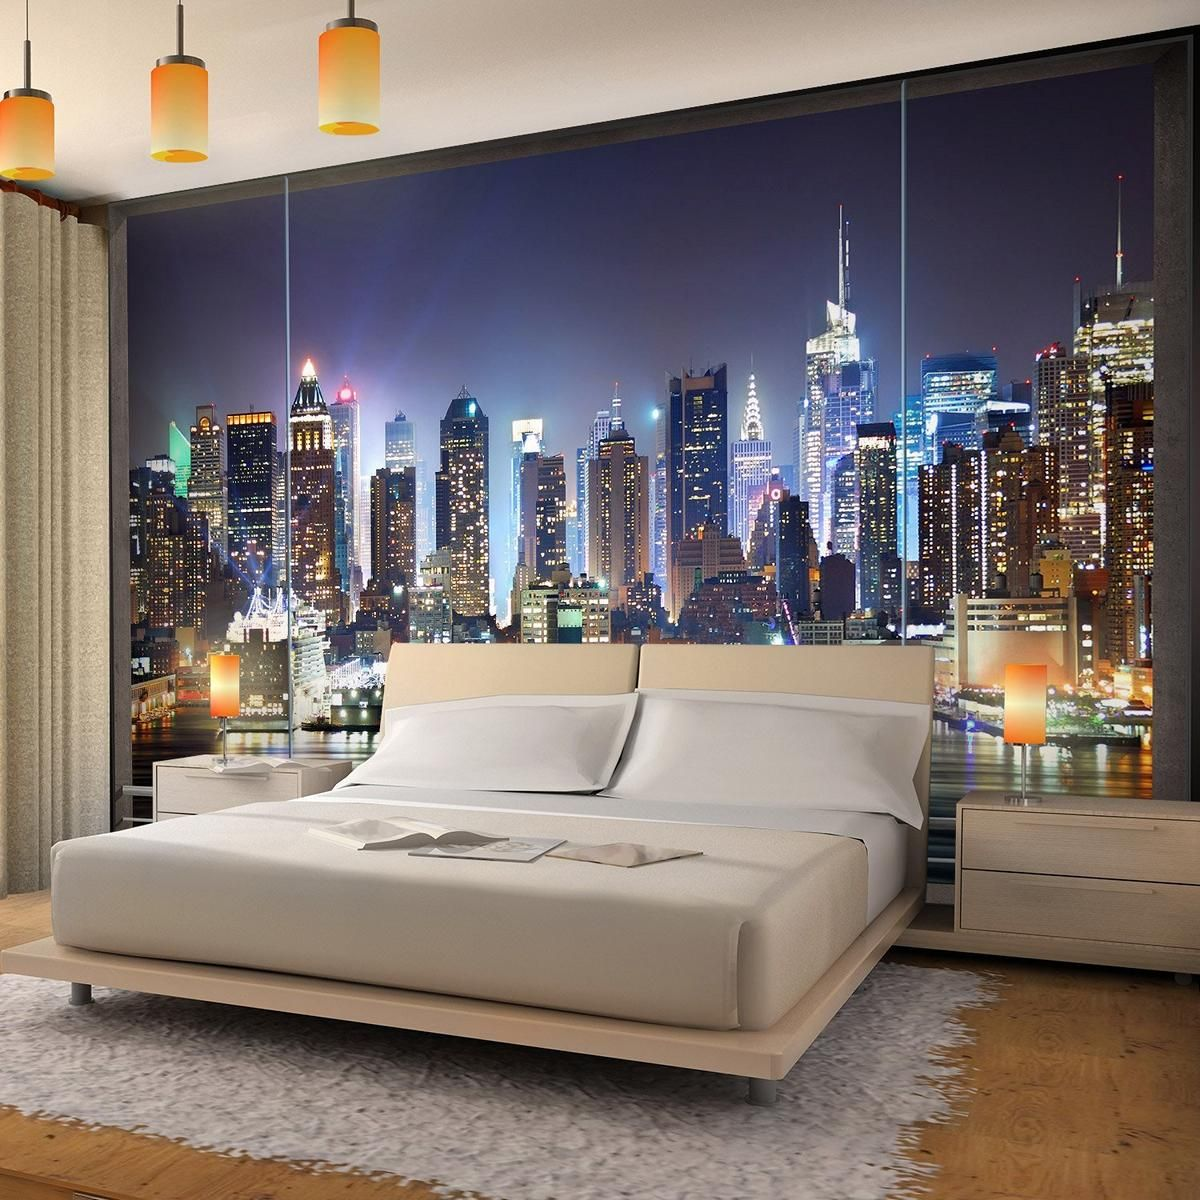 vlies fototapete fenster nach new york ist eine beeindruckende pannorama tapete mit dem blick. Black Bedroom Furniture Sets. Home Design Ideas